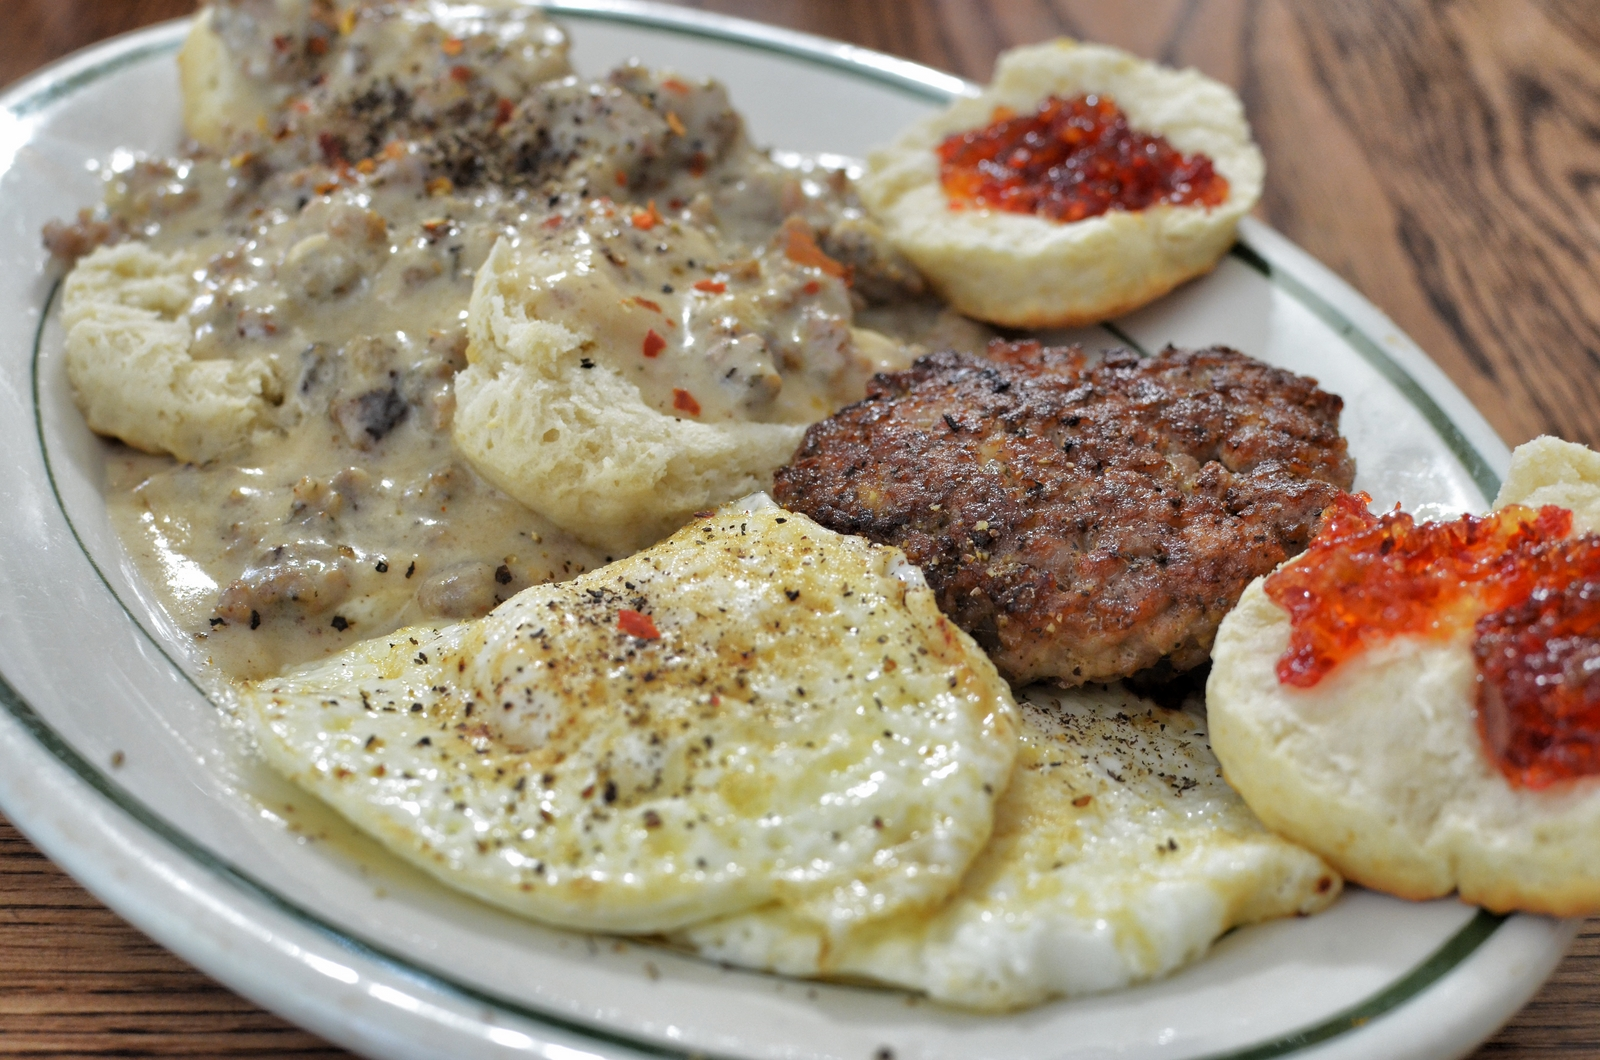 Breakfast Pr0n – Biscuits and Gravy | What's 4 Dinner Solutions